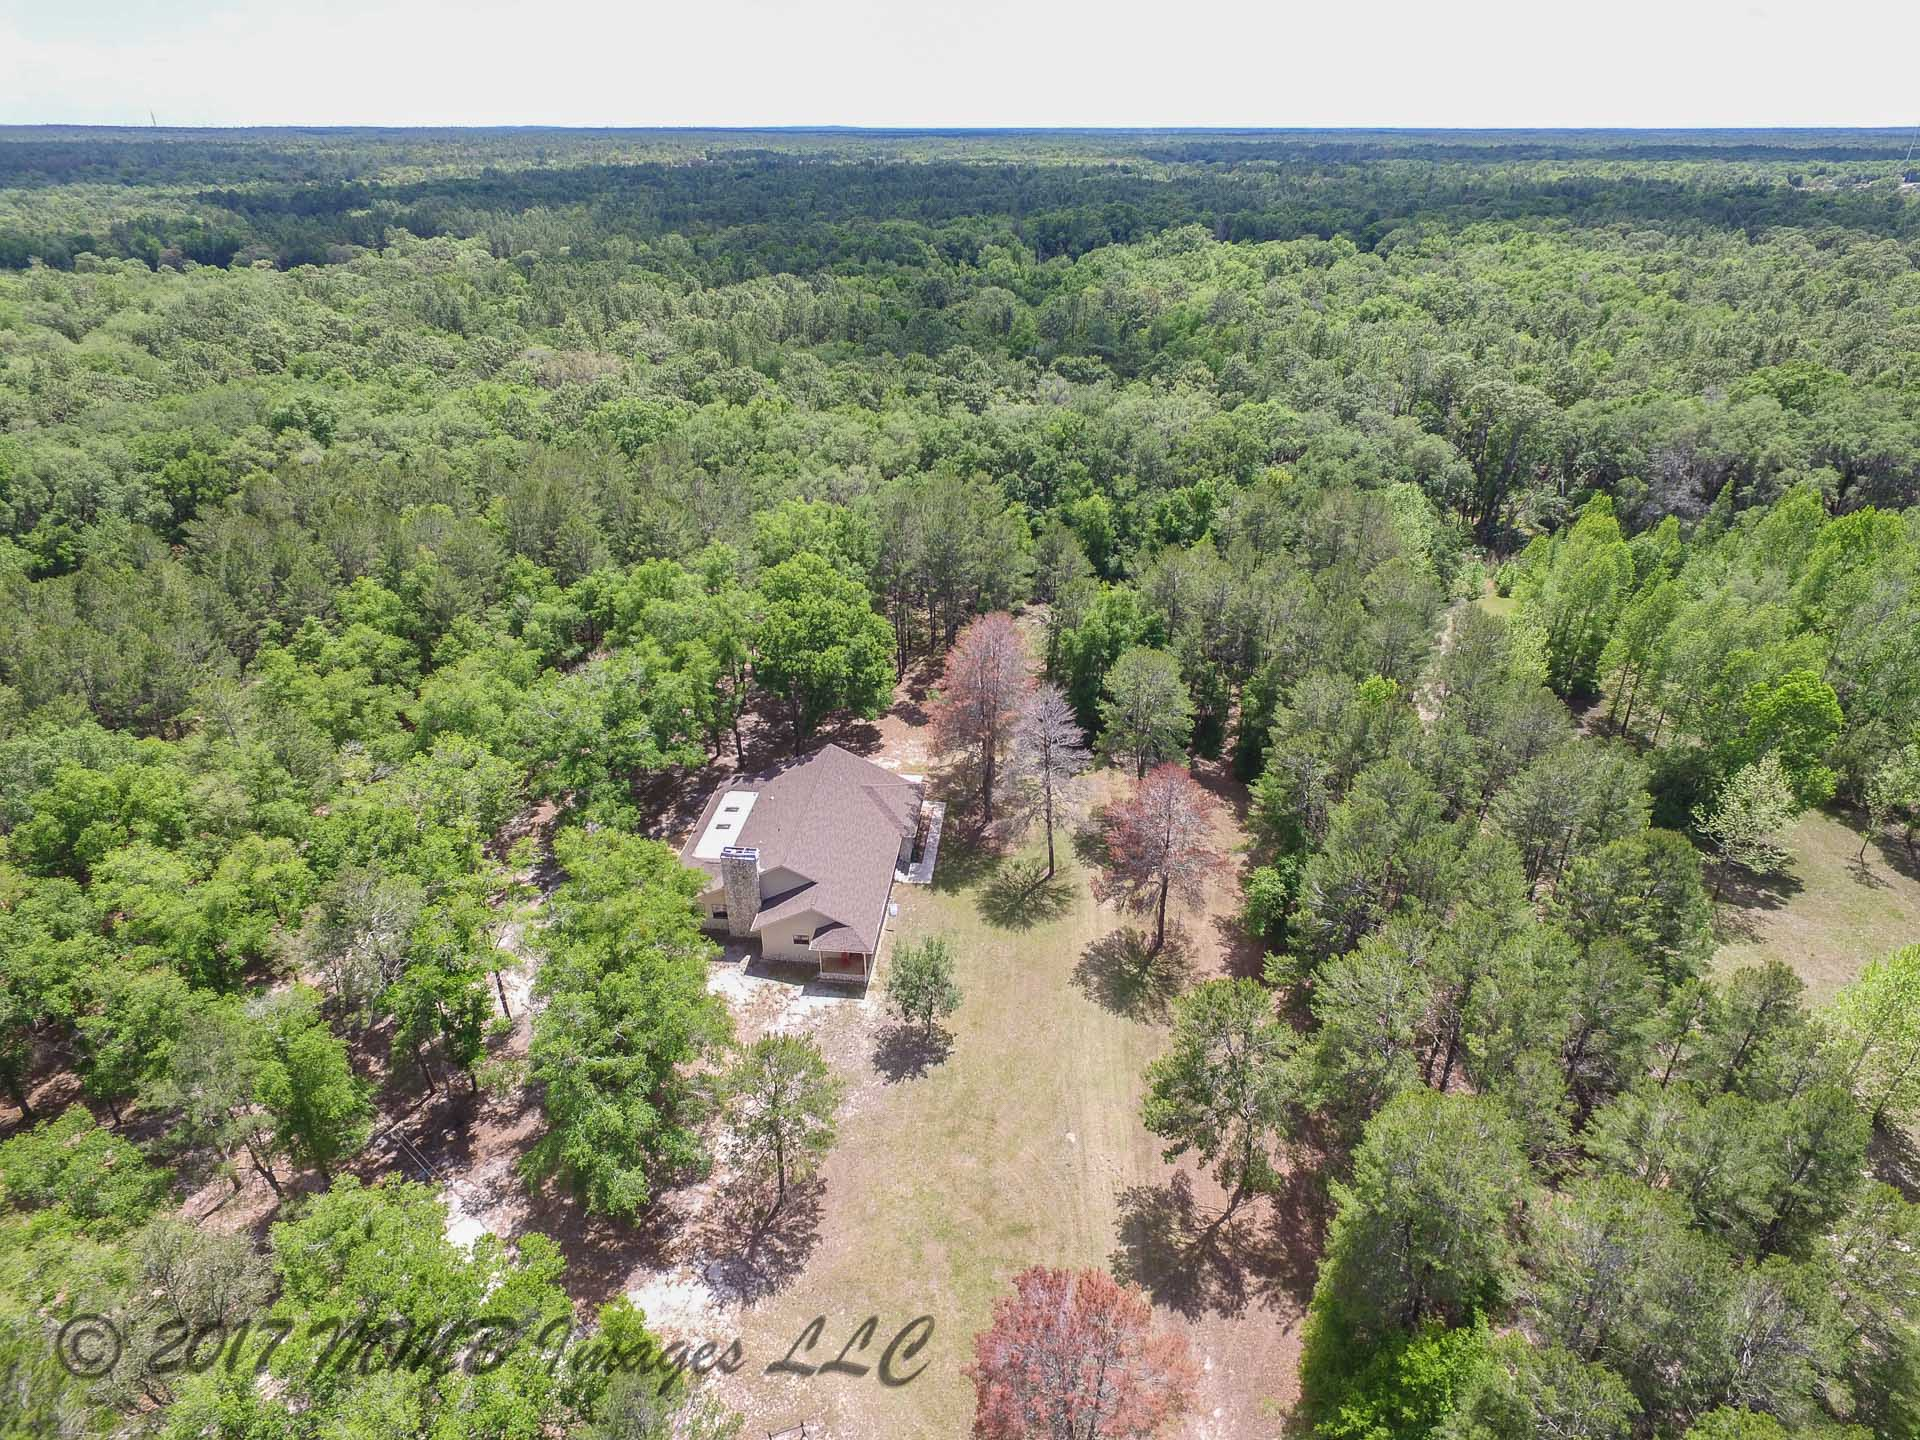 Aerial Photo of the Farm for Sale in Citrus County